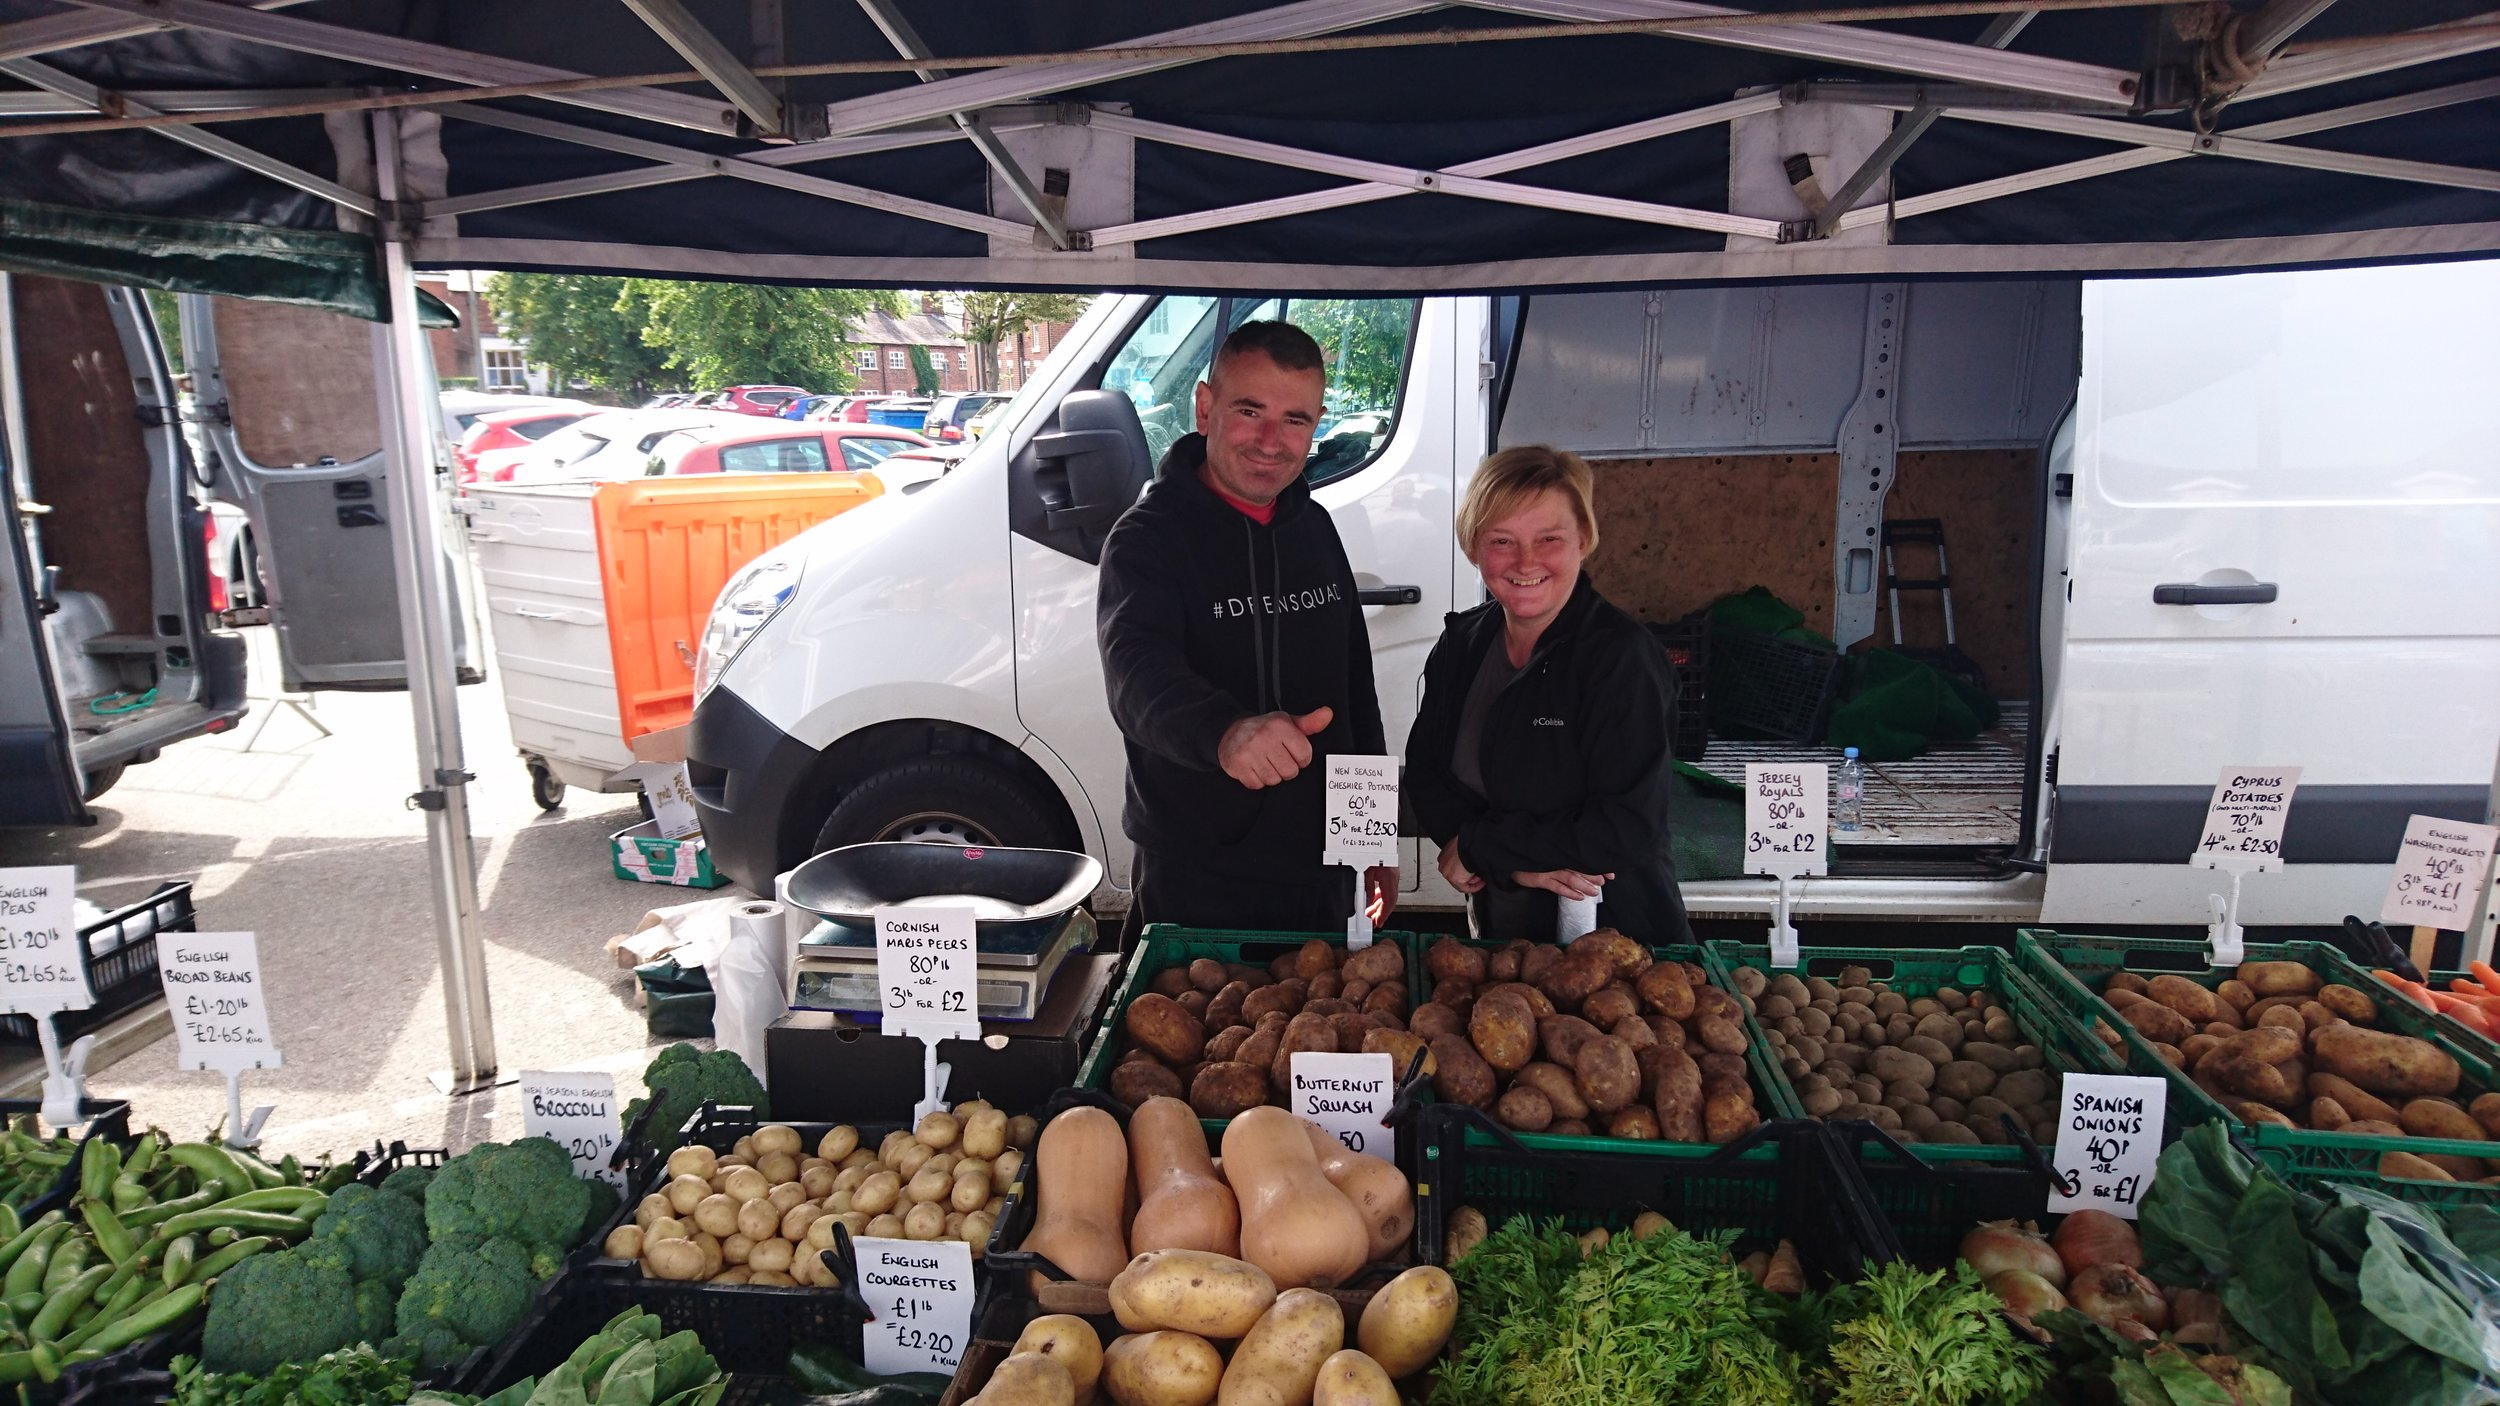 Clem's Fruit & Veg - Location: Outdoor MarketTrading: SaturdayContact: via my Facebook page